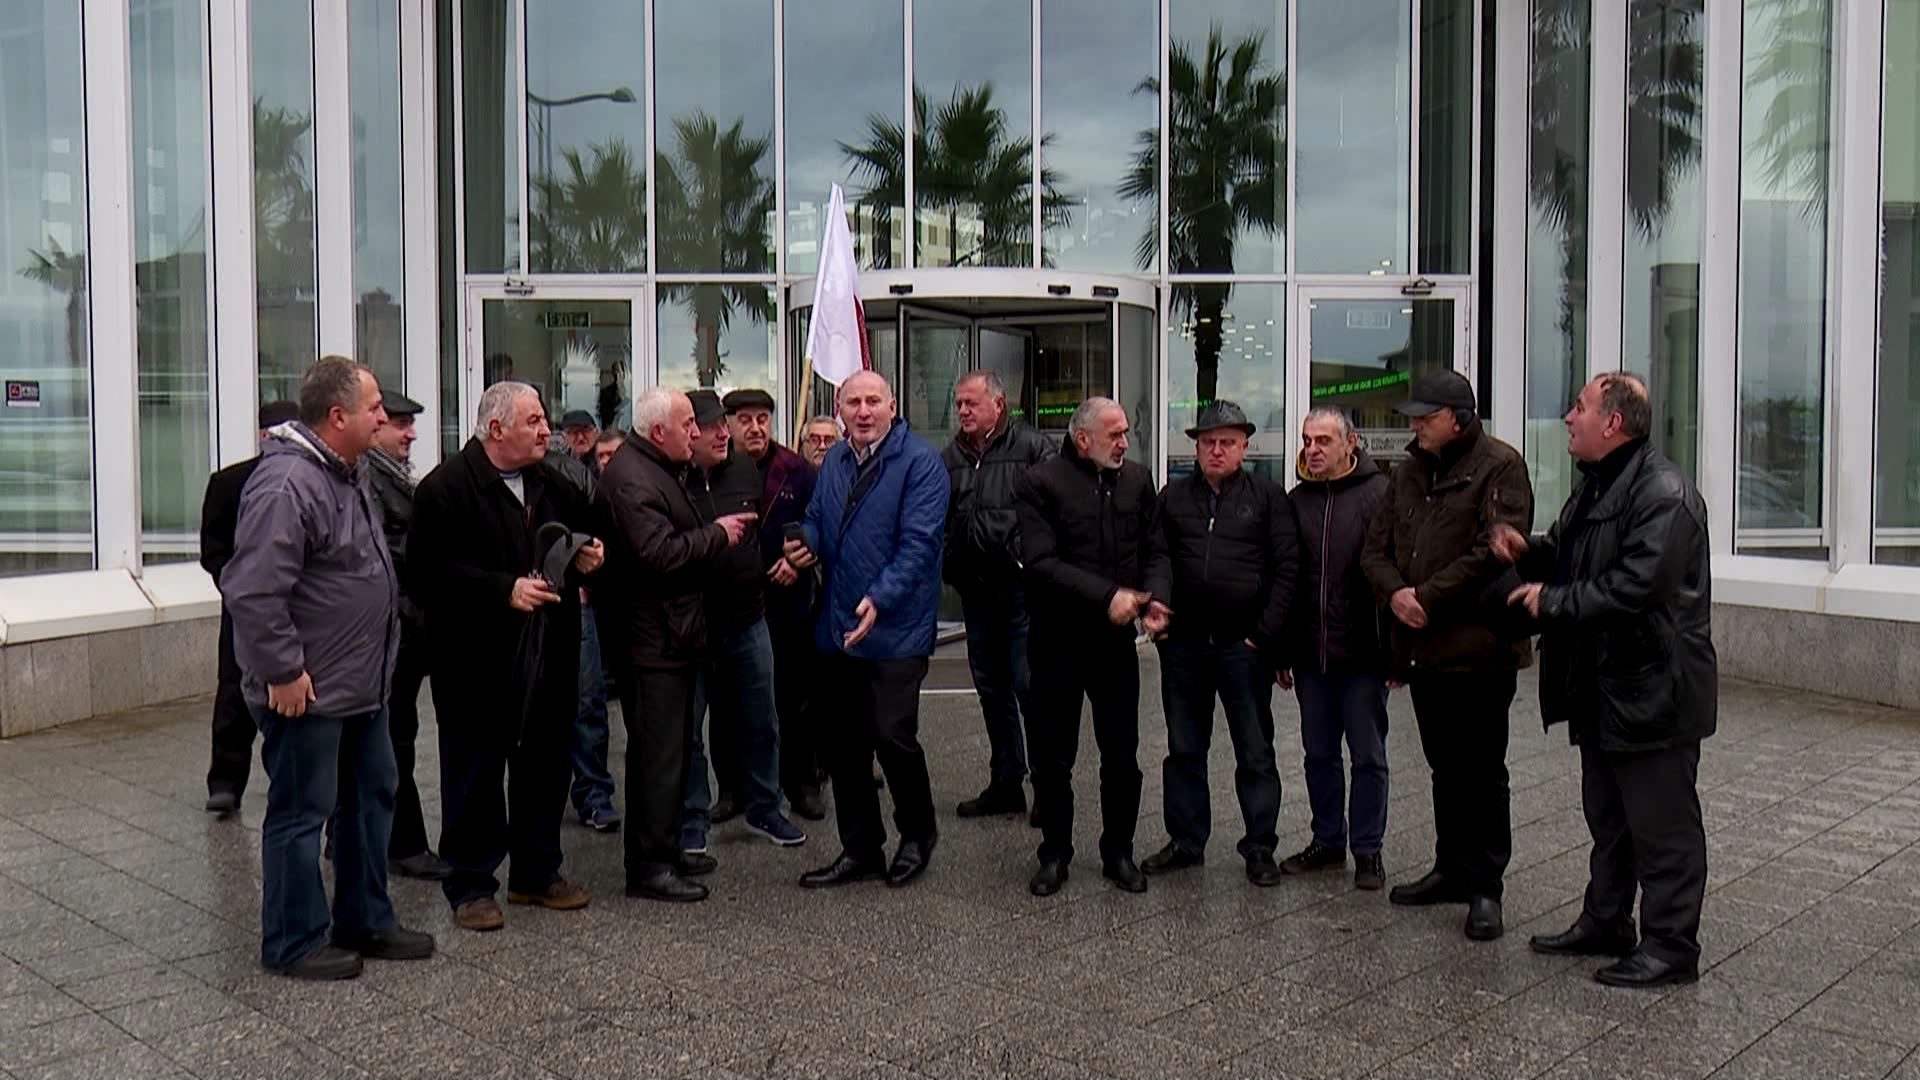 Protest action at Batumi House of Justice